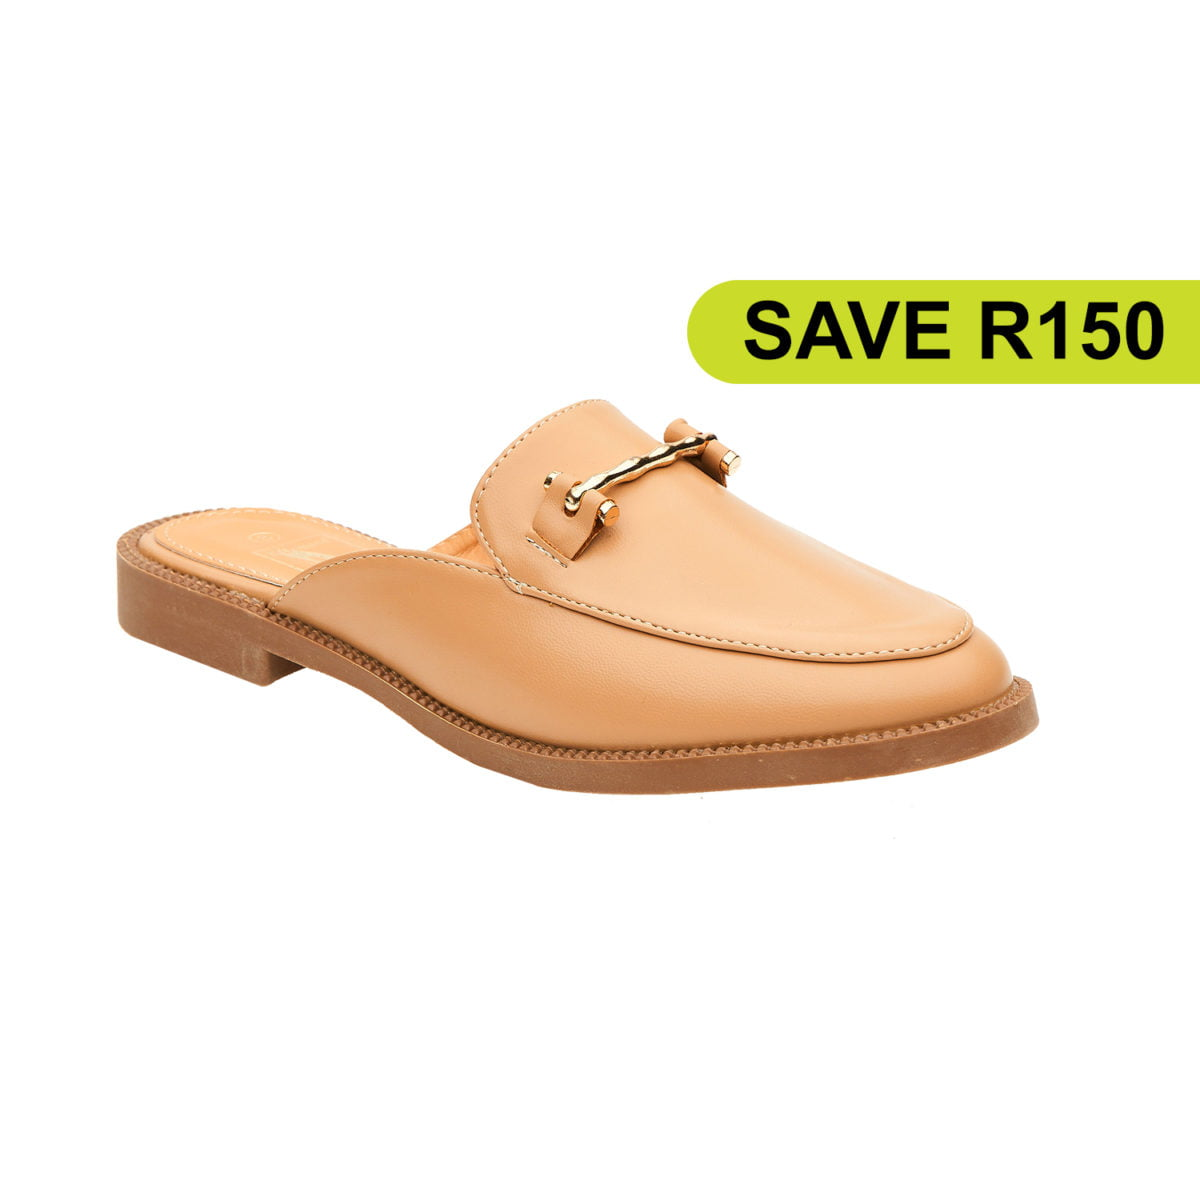 N DEMAND BUCKLE ACCENT LOAFER SLIP ON - NUDE